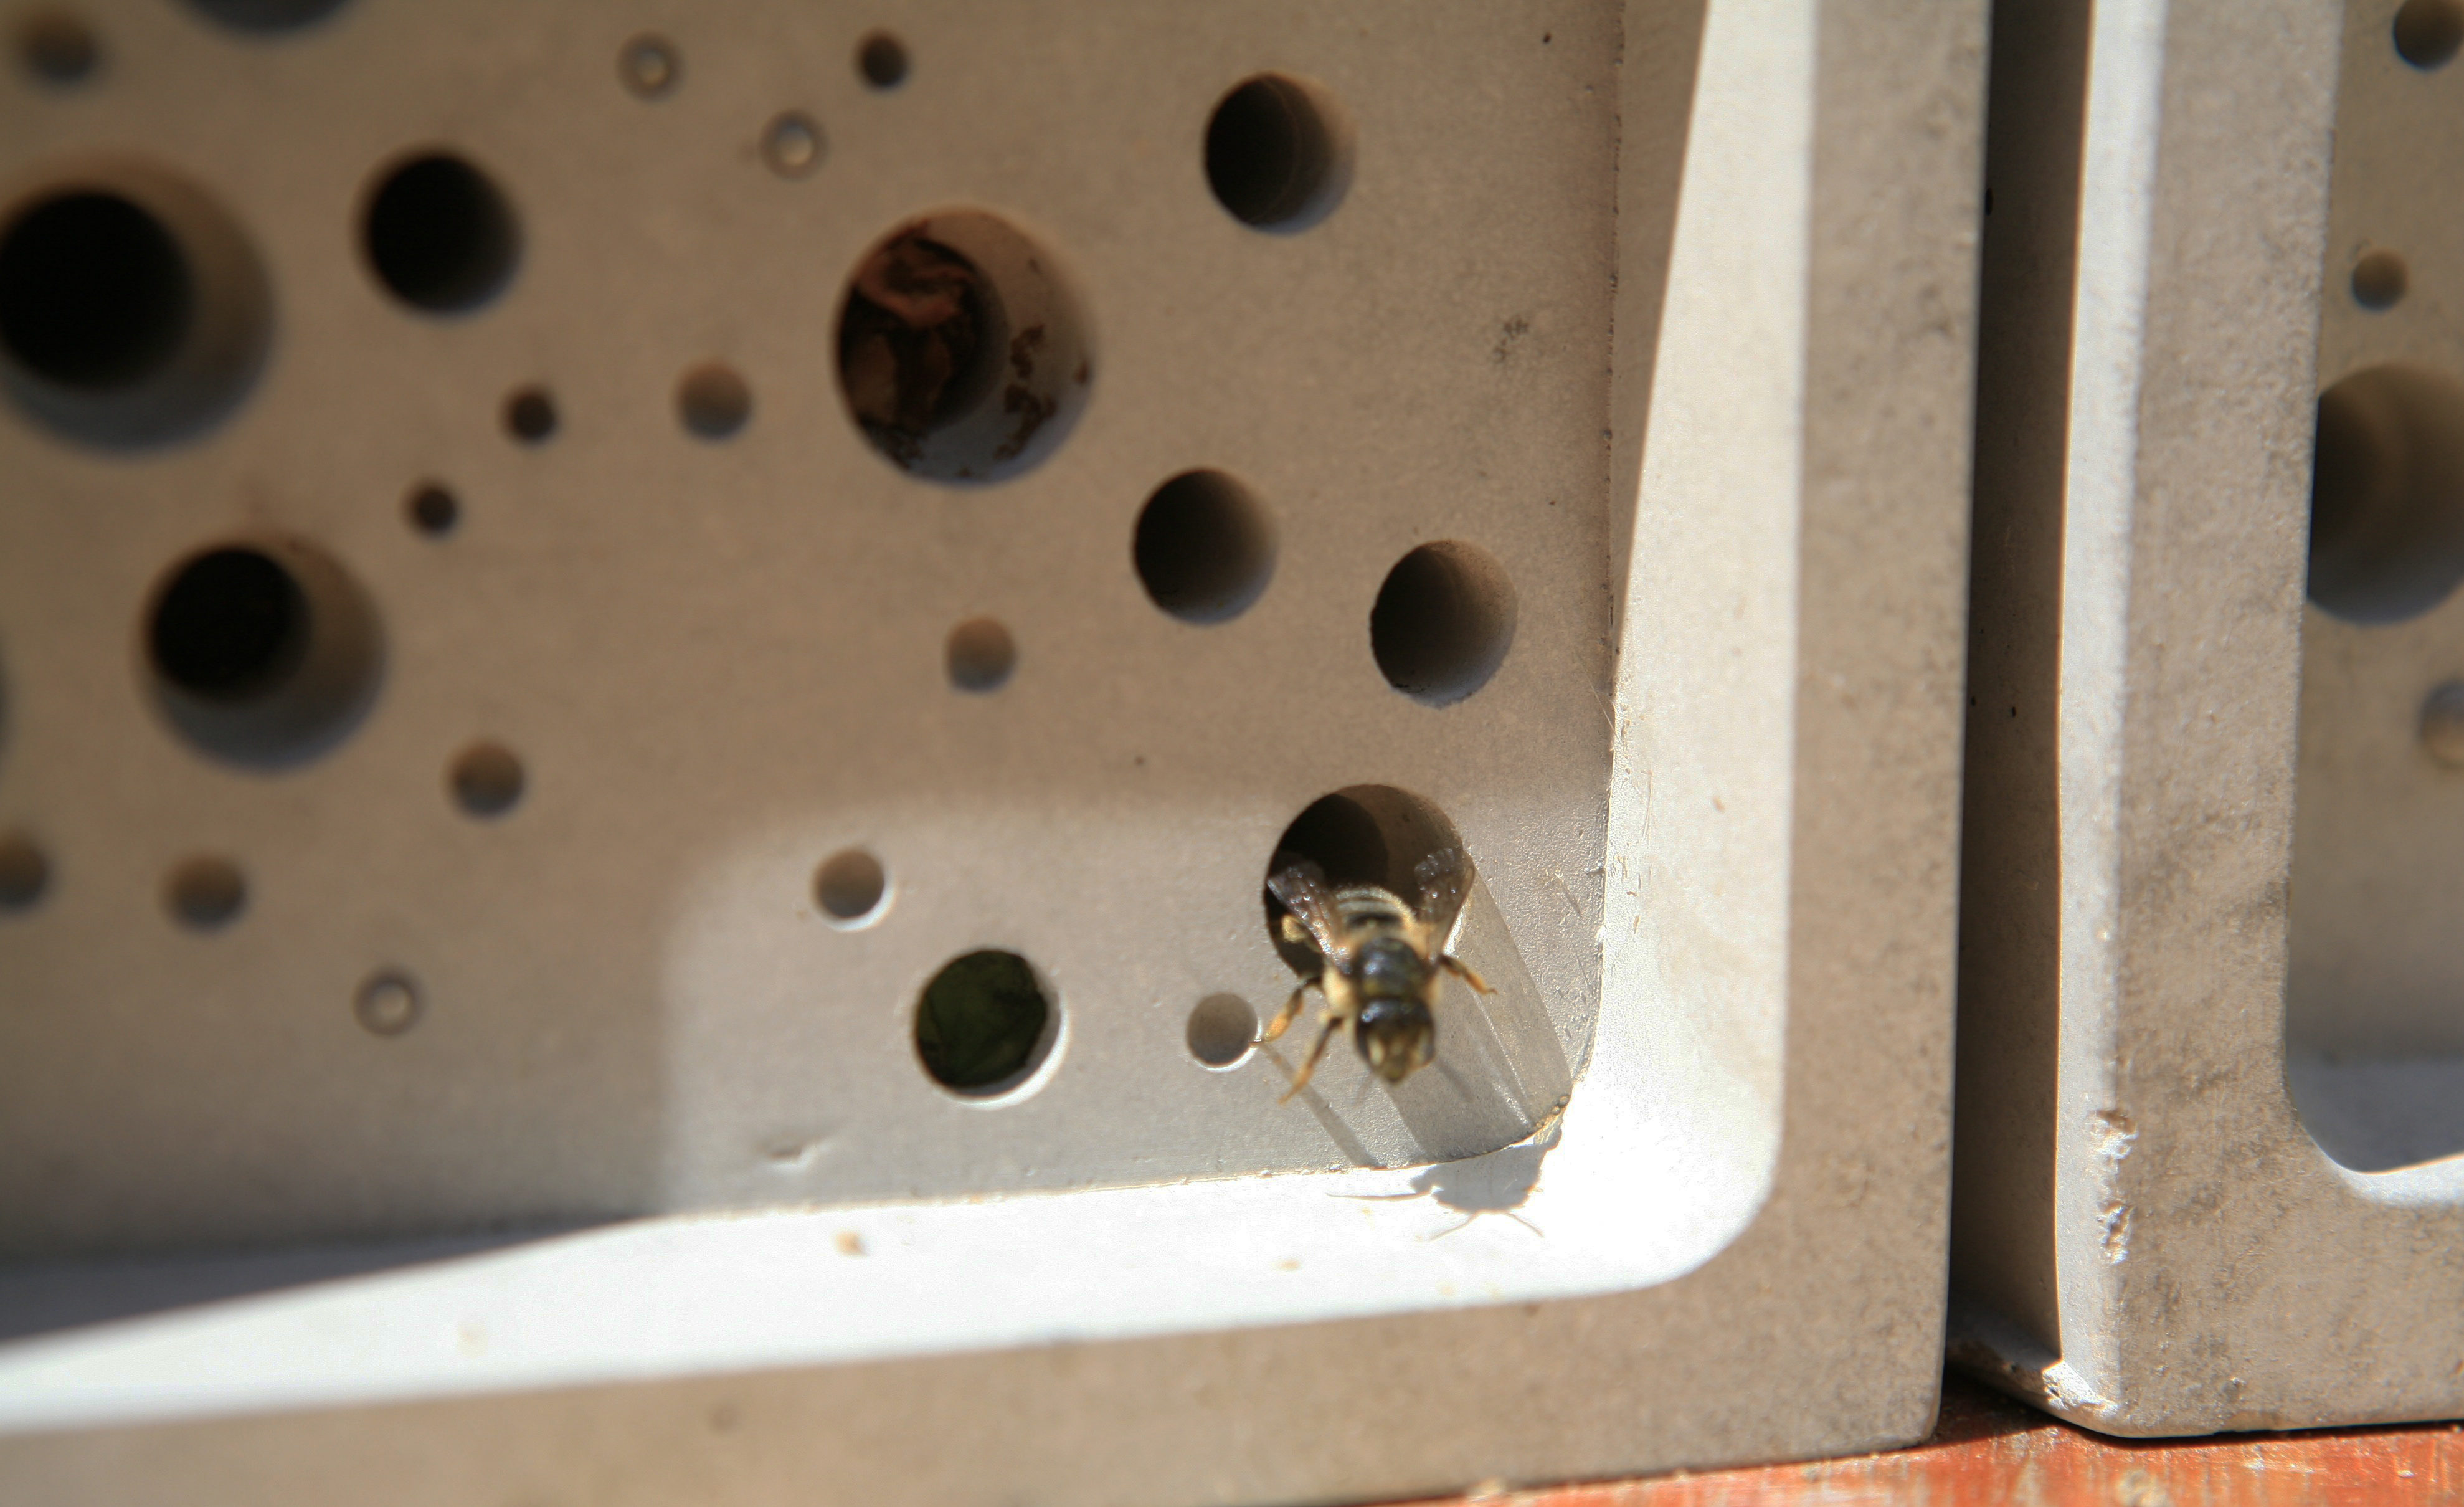 Solitary bees can nest in the Bee Brick.